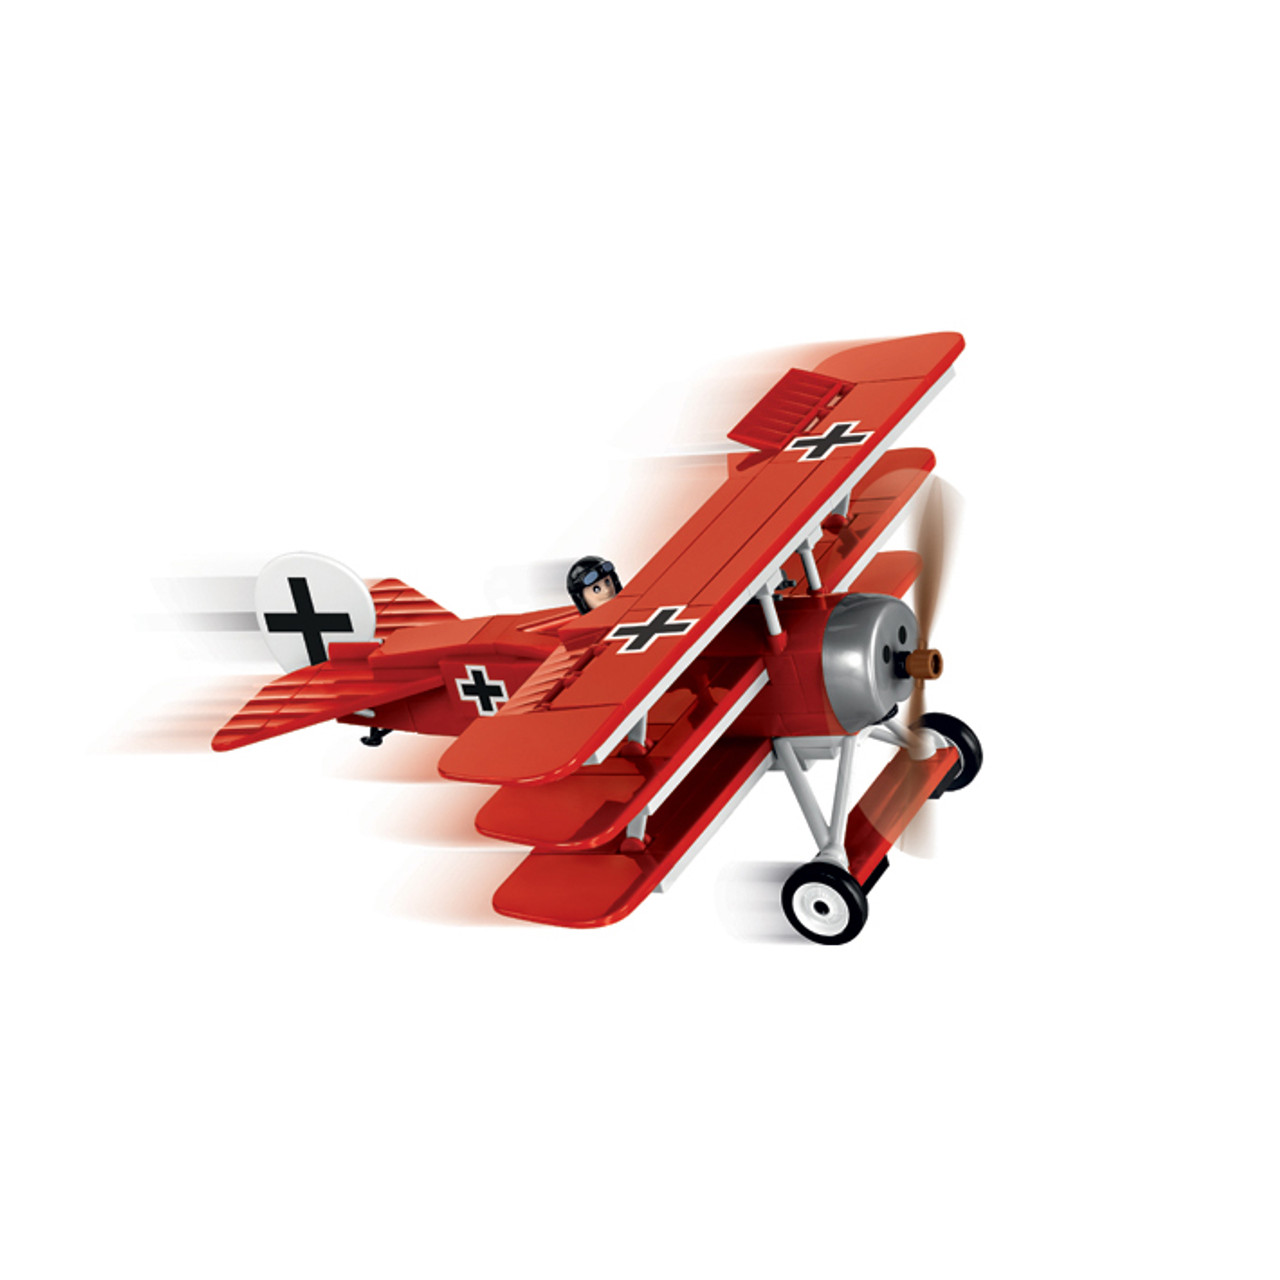 Fokker DR 1 Red Baron Triplane Diecast Model by Cobi Toys